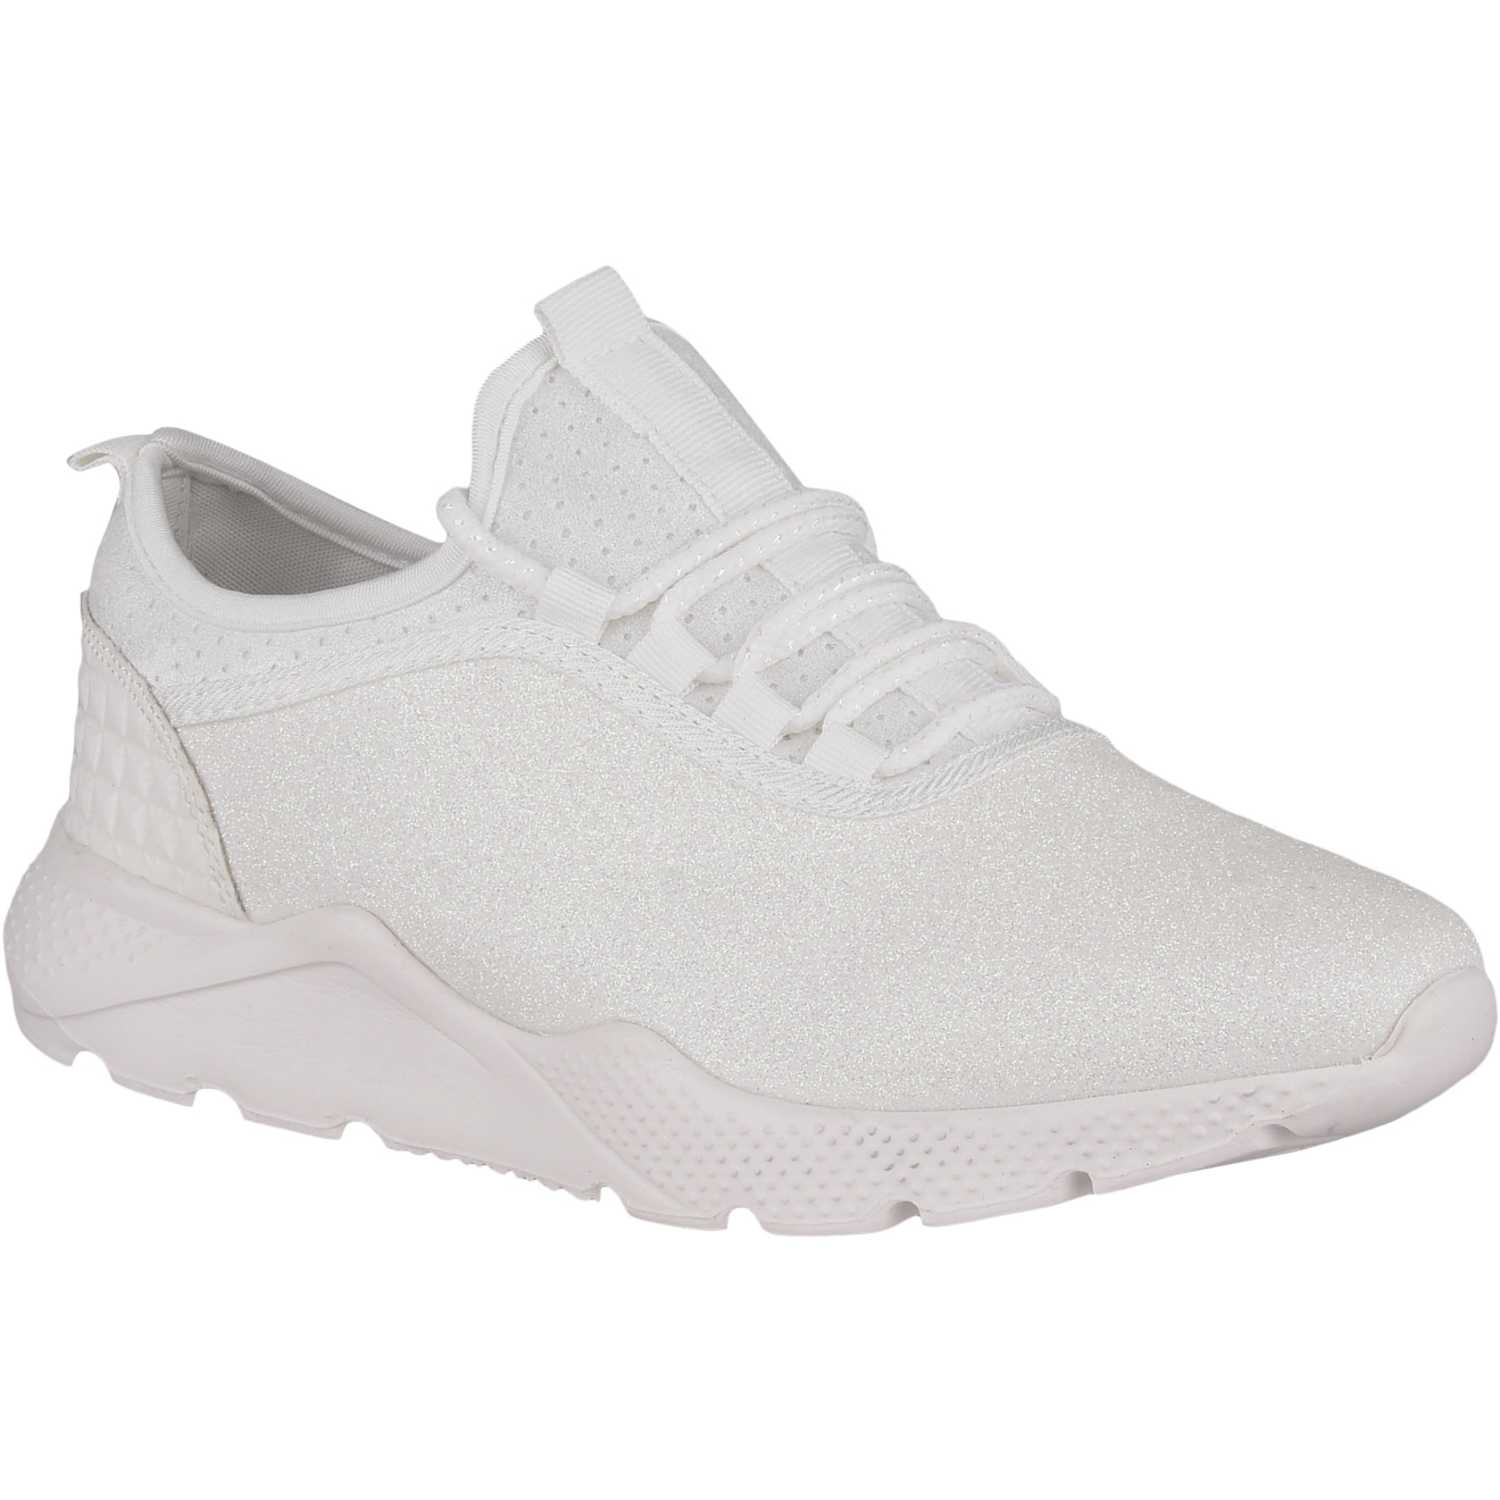 Platanitos z 7038 Blanco Zapatillas Fashion